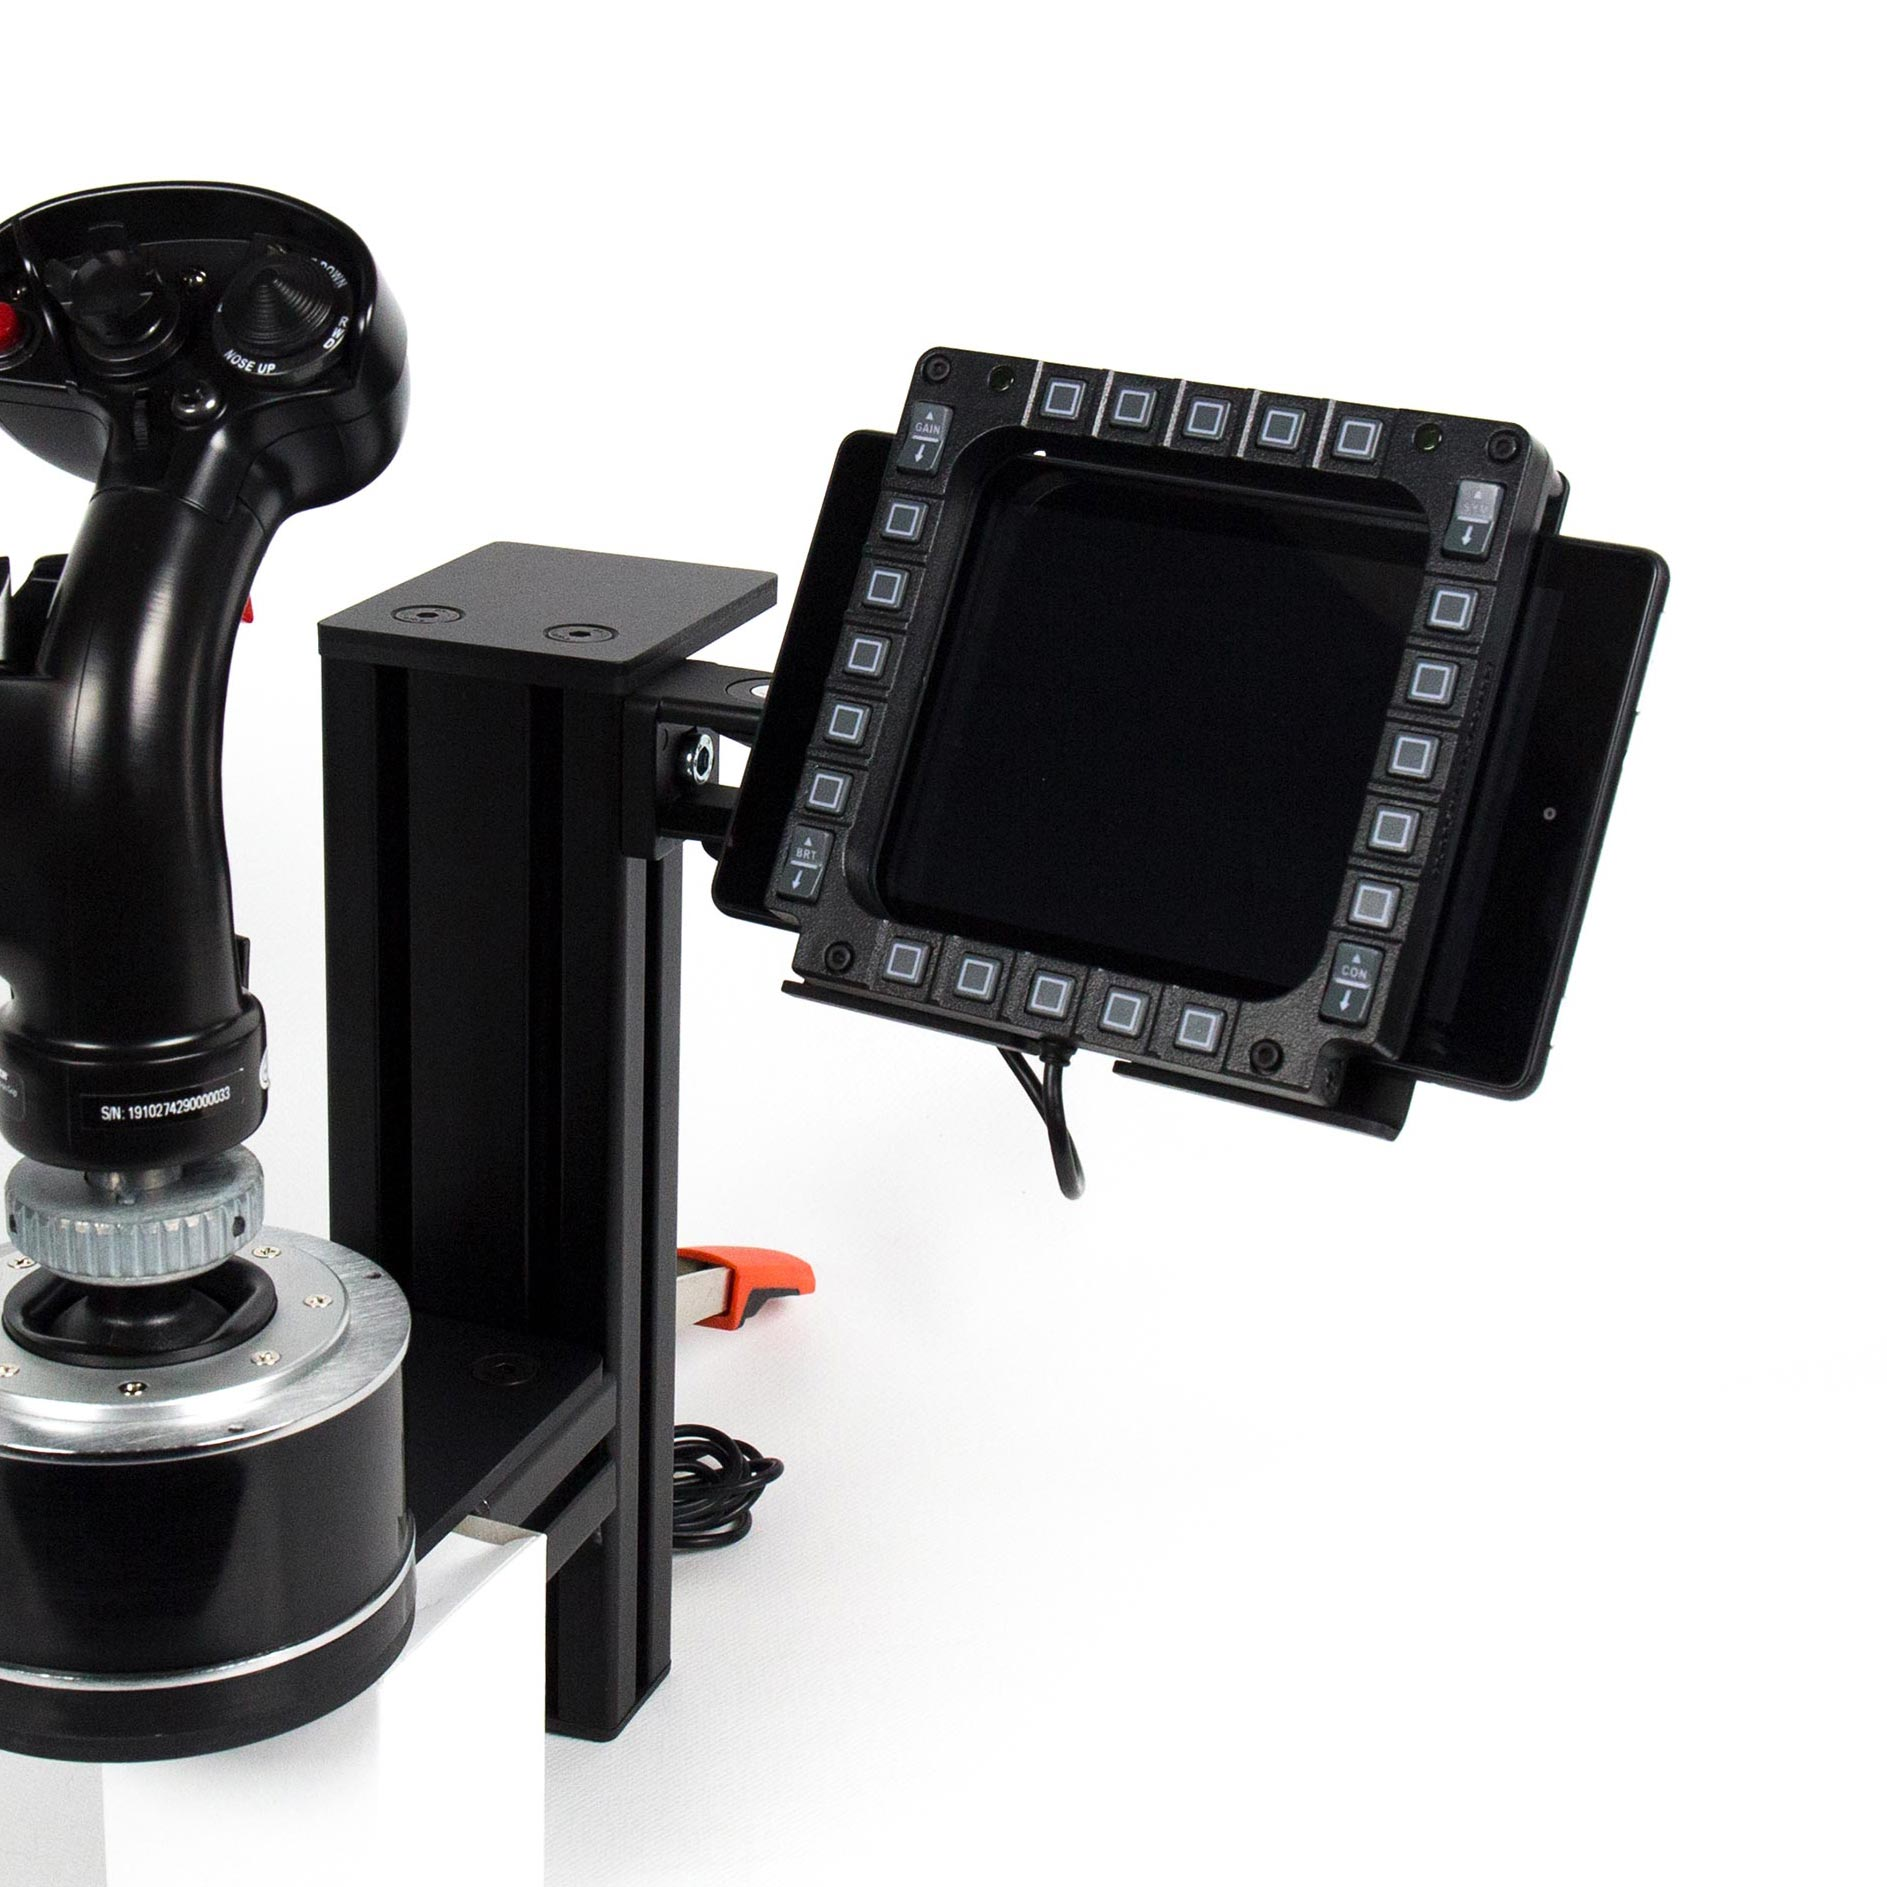 monstertech_mfd_mount_black_02-1.jpg